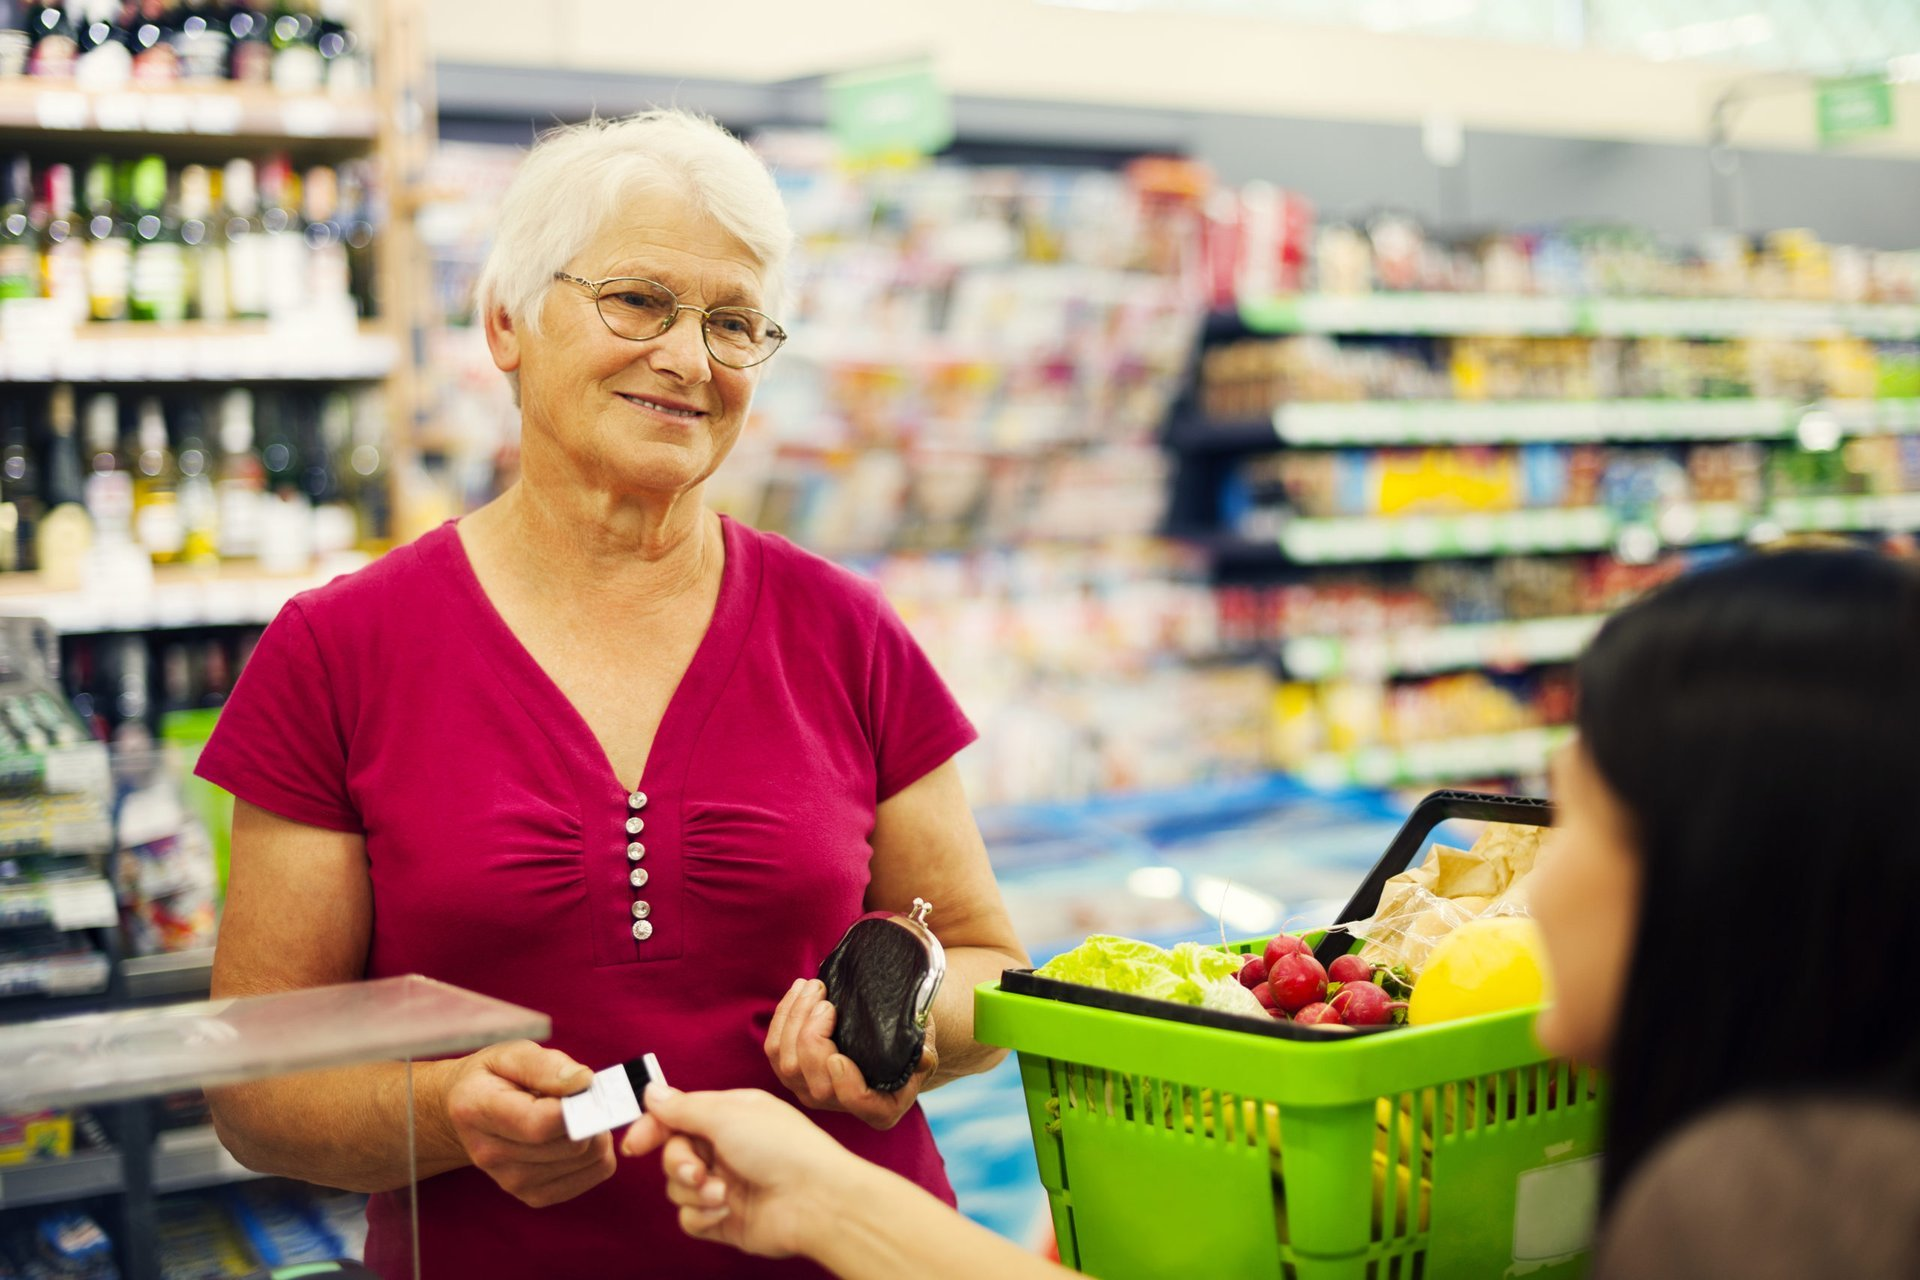 Senior woman earning grocery cash back rewards at the store